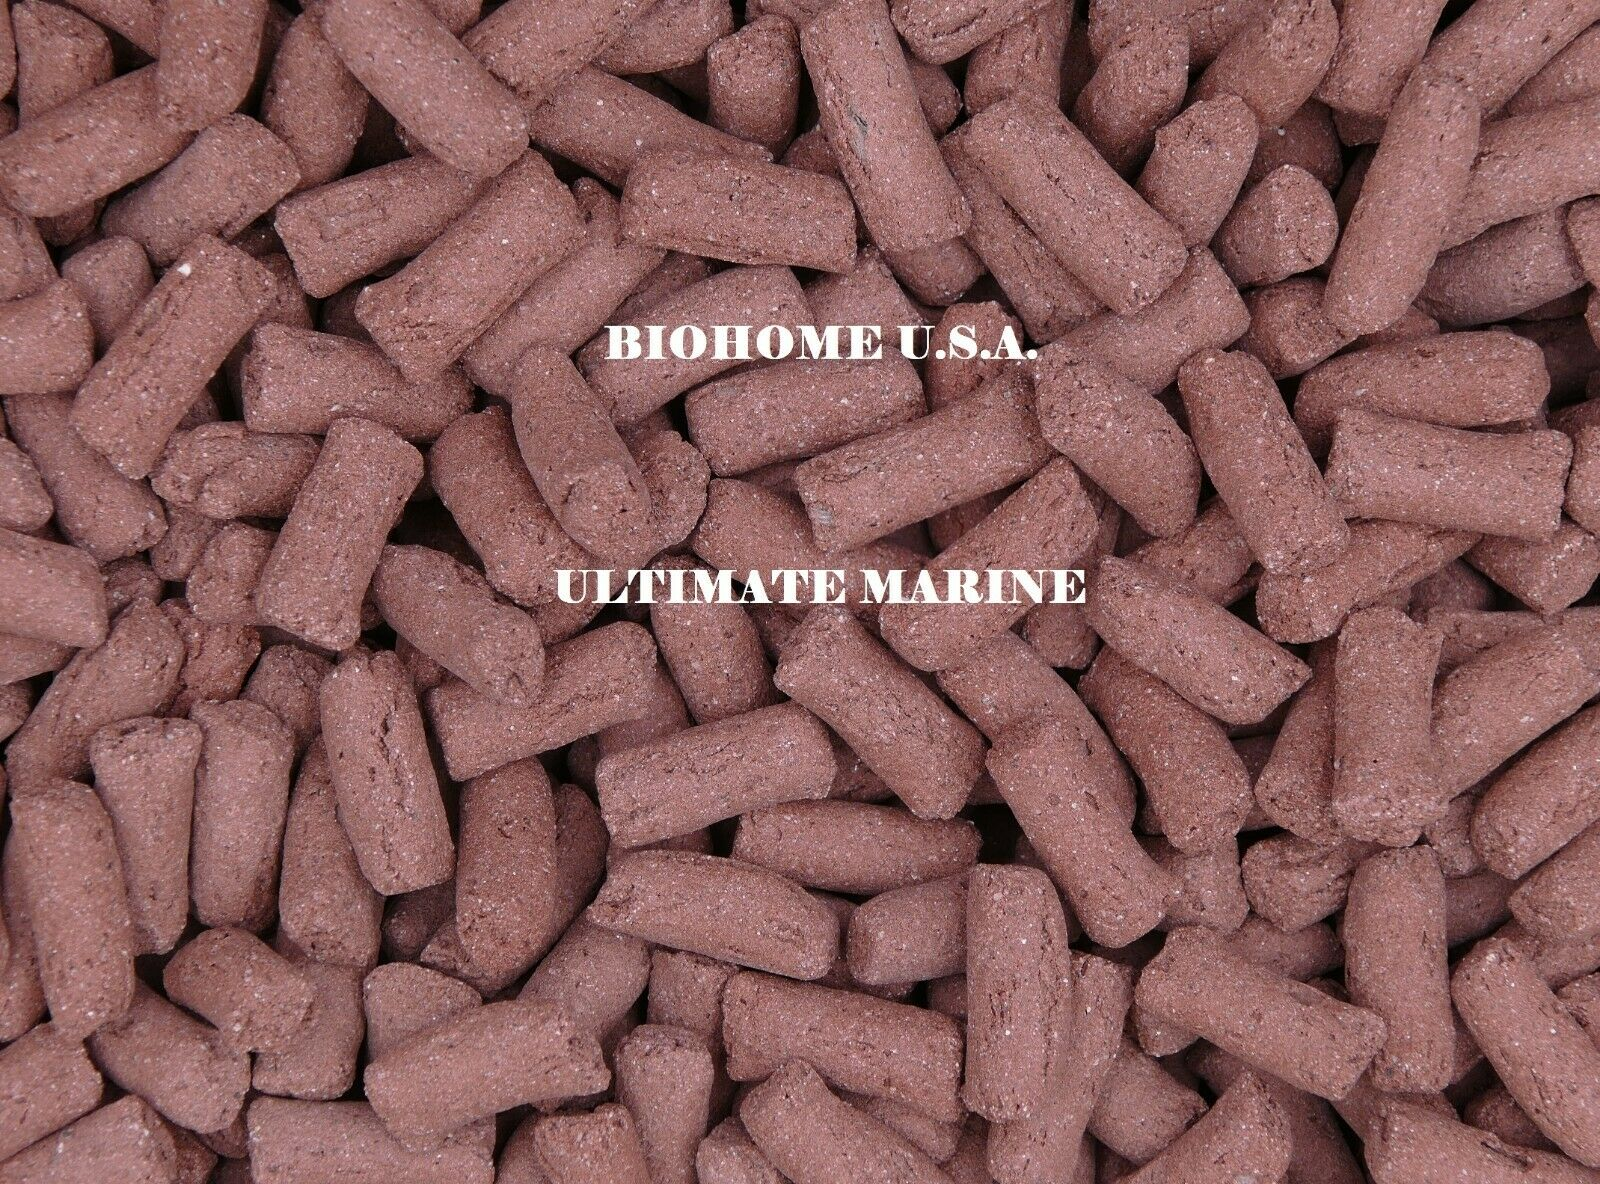 4 LBS BIOHOME ULTIMATE MARINE FILTER MEDIA MEDIUM RED  13.99 A POUND US SELLER